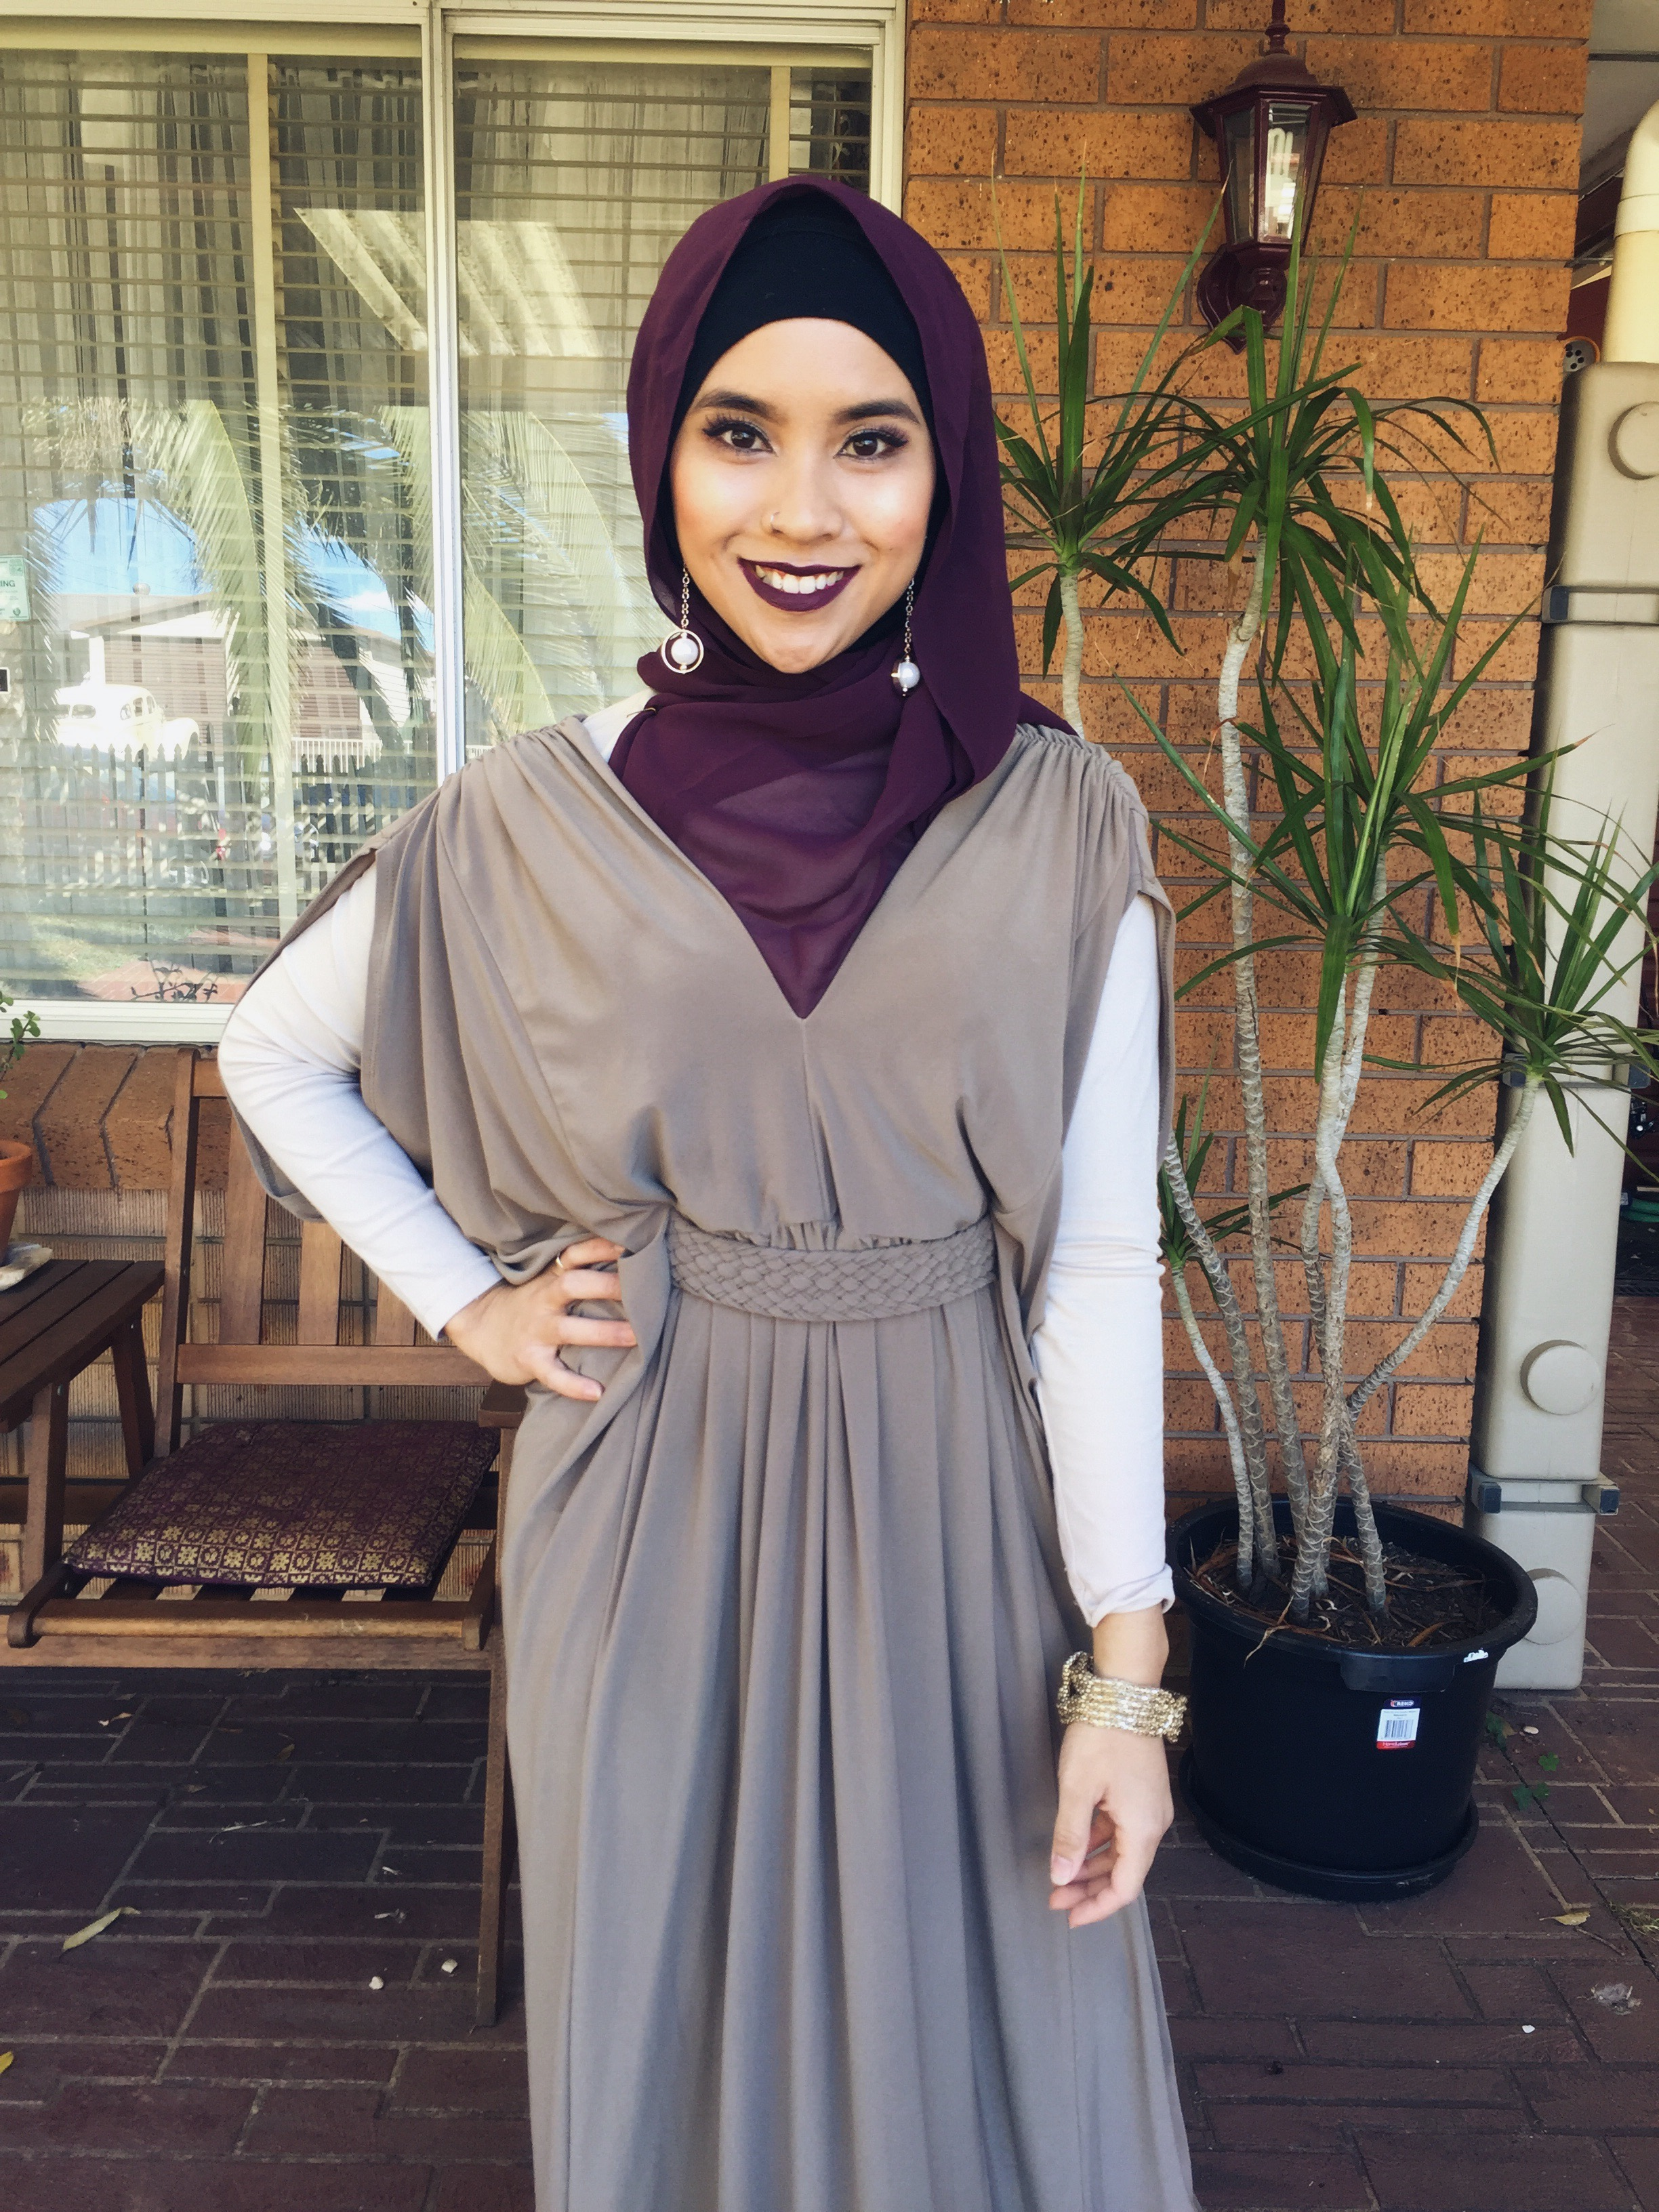 Liana Dress Muslim Beige Your Hijab Stories What Does The Mean To You Nourka Unveiling Truth A Socio Cultural Study On How Australians Perceive Islamic Headscarf By Exploring Topic Of I Hoped Alleviate